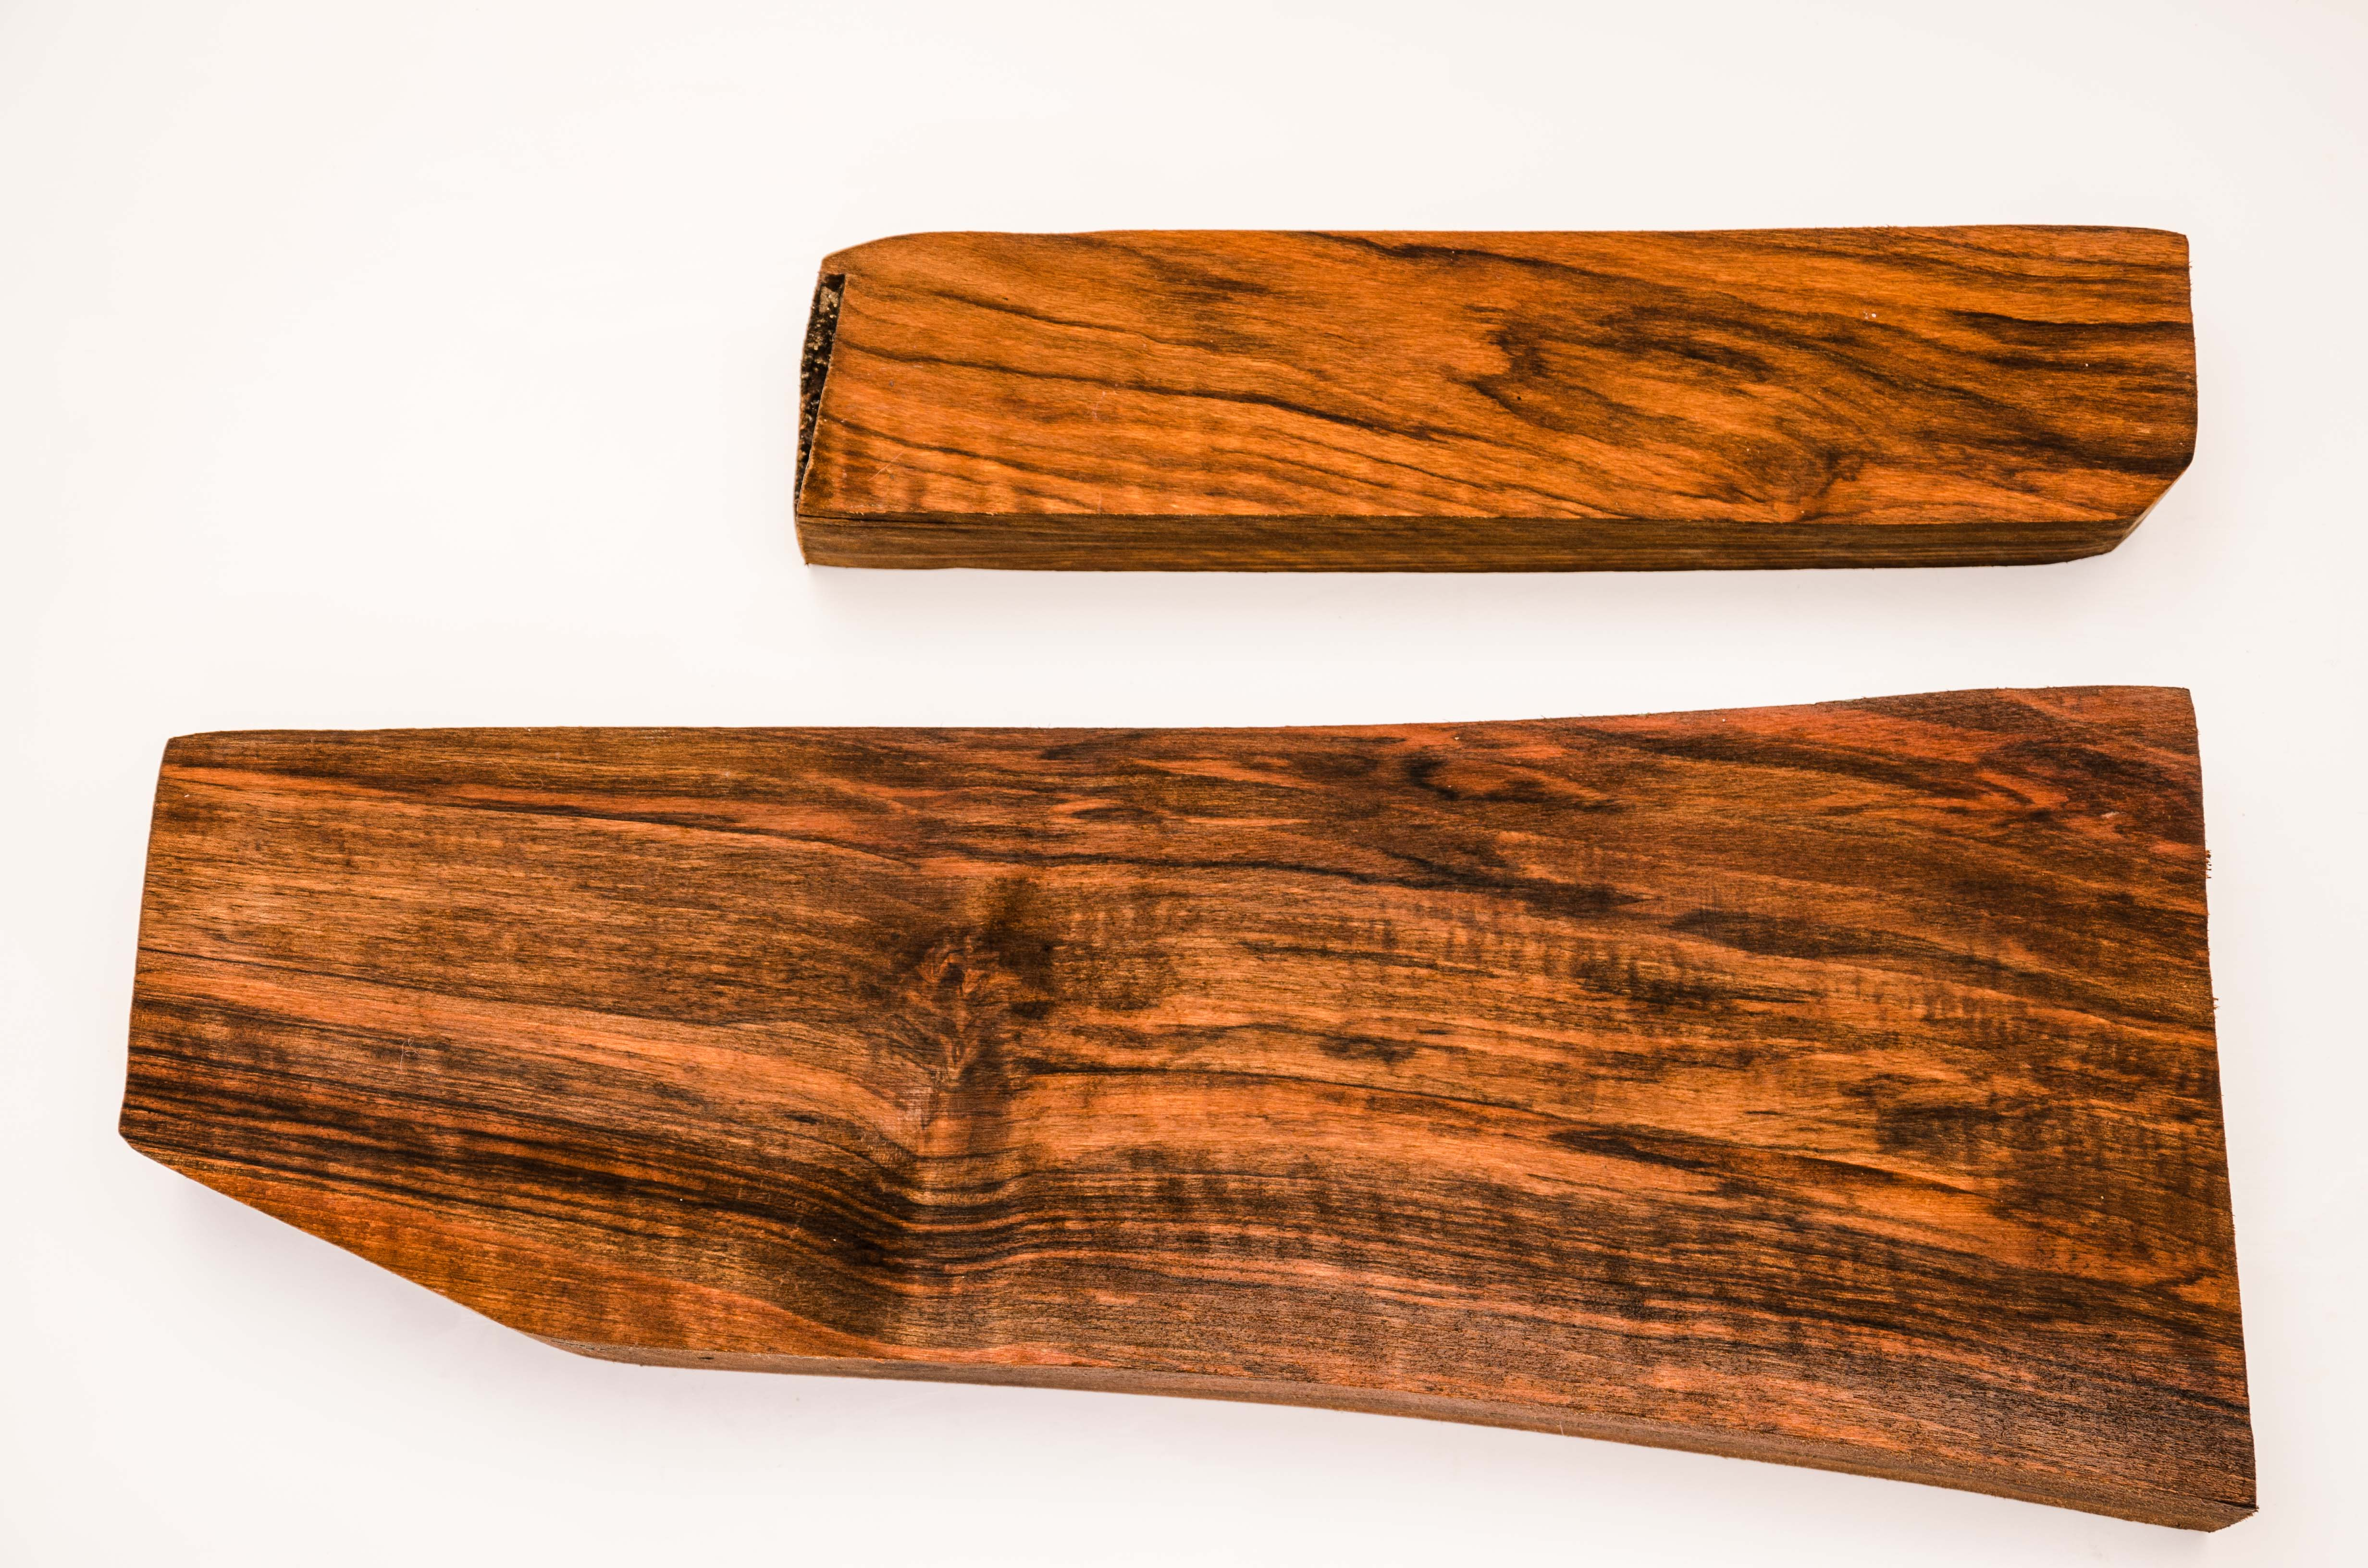 walnut_stock_blanks_for_guns_and_rifles-0533